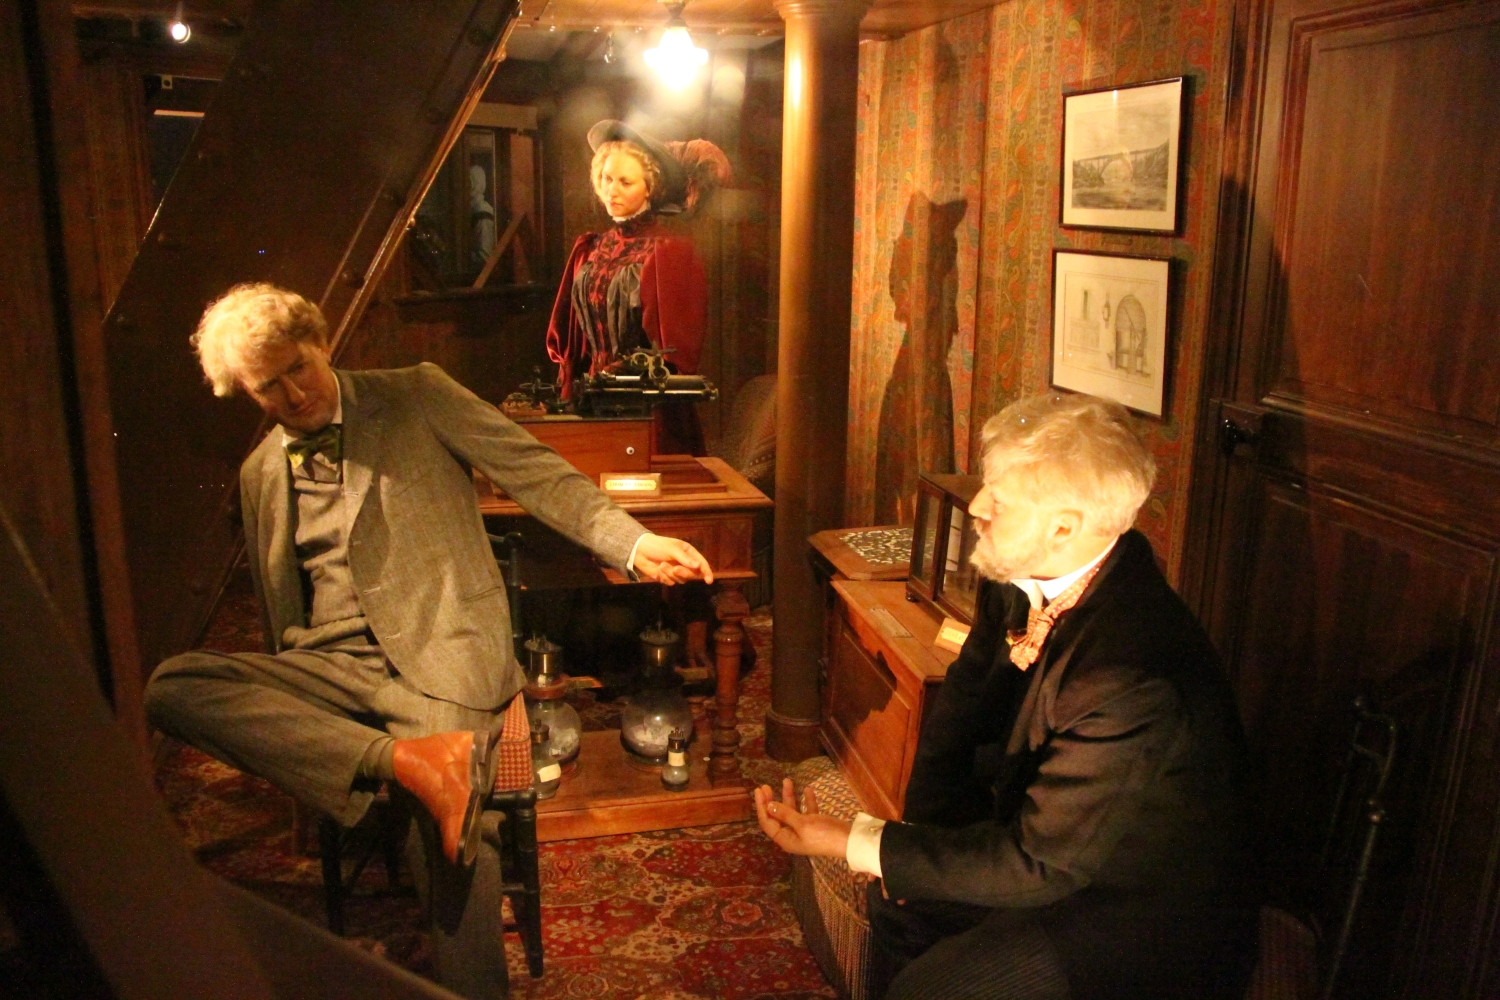 Eiffel tower gustave apartment 28 images gustave Eiffel tower secret room